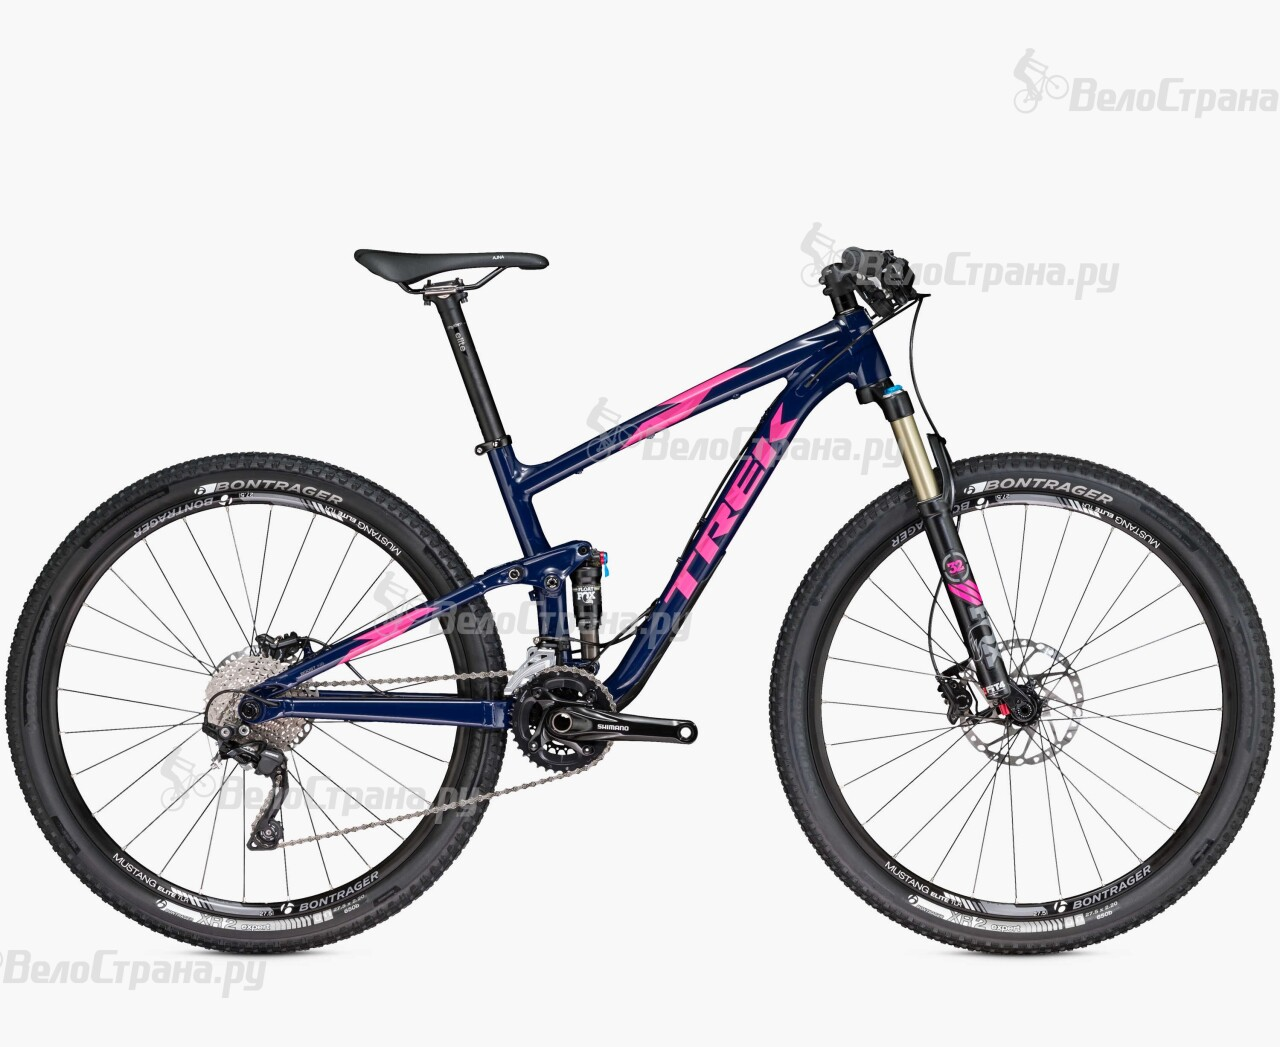 Велосипед Trek Top Fuel 8 Women's 27,5 (2016) велосипед trek fuel ex 9 29 2017